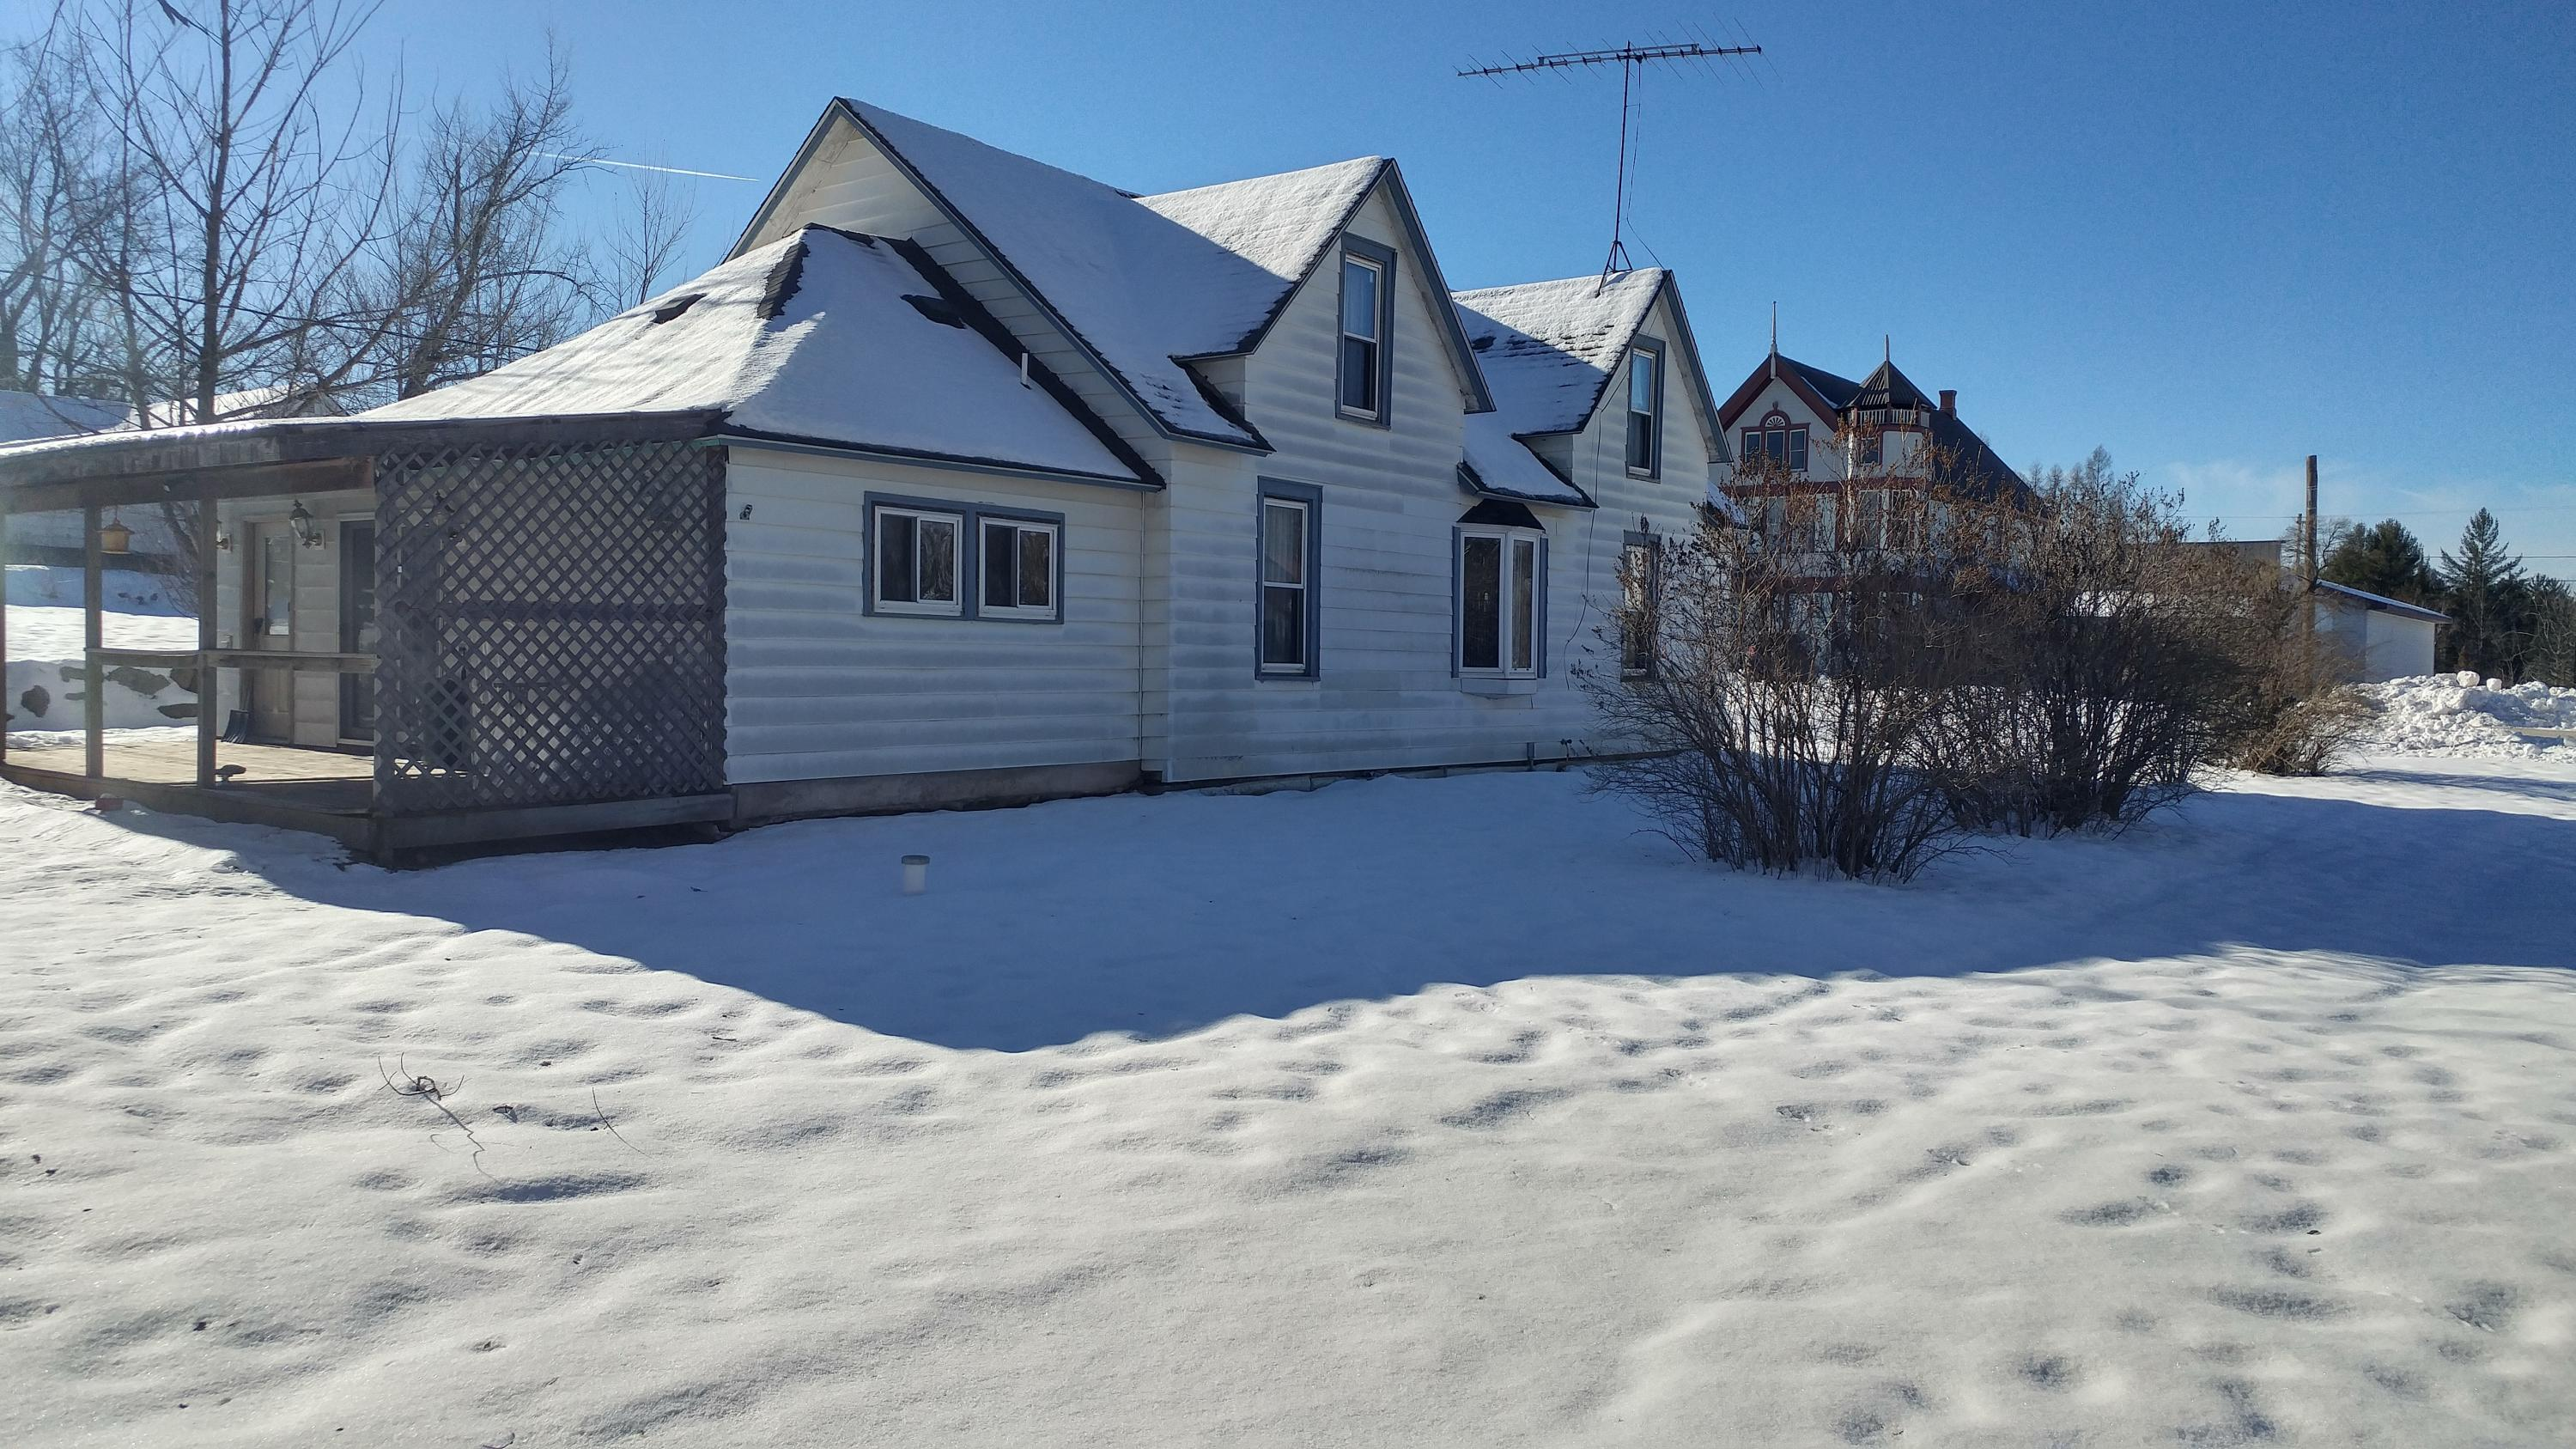 N15066 Grant St., Amberg, Wisconsin 54102, 3 Bedrooms Bedrooms, 9 Rooms Rooms,2 BathroomsBathrooms,Single-Family,For Sale,Grant St.,1620357